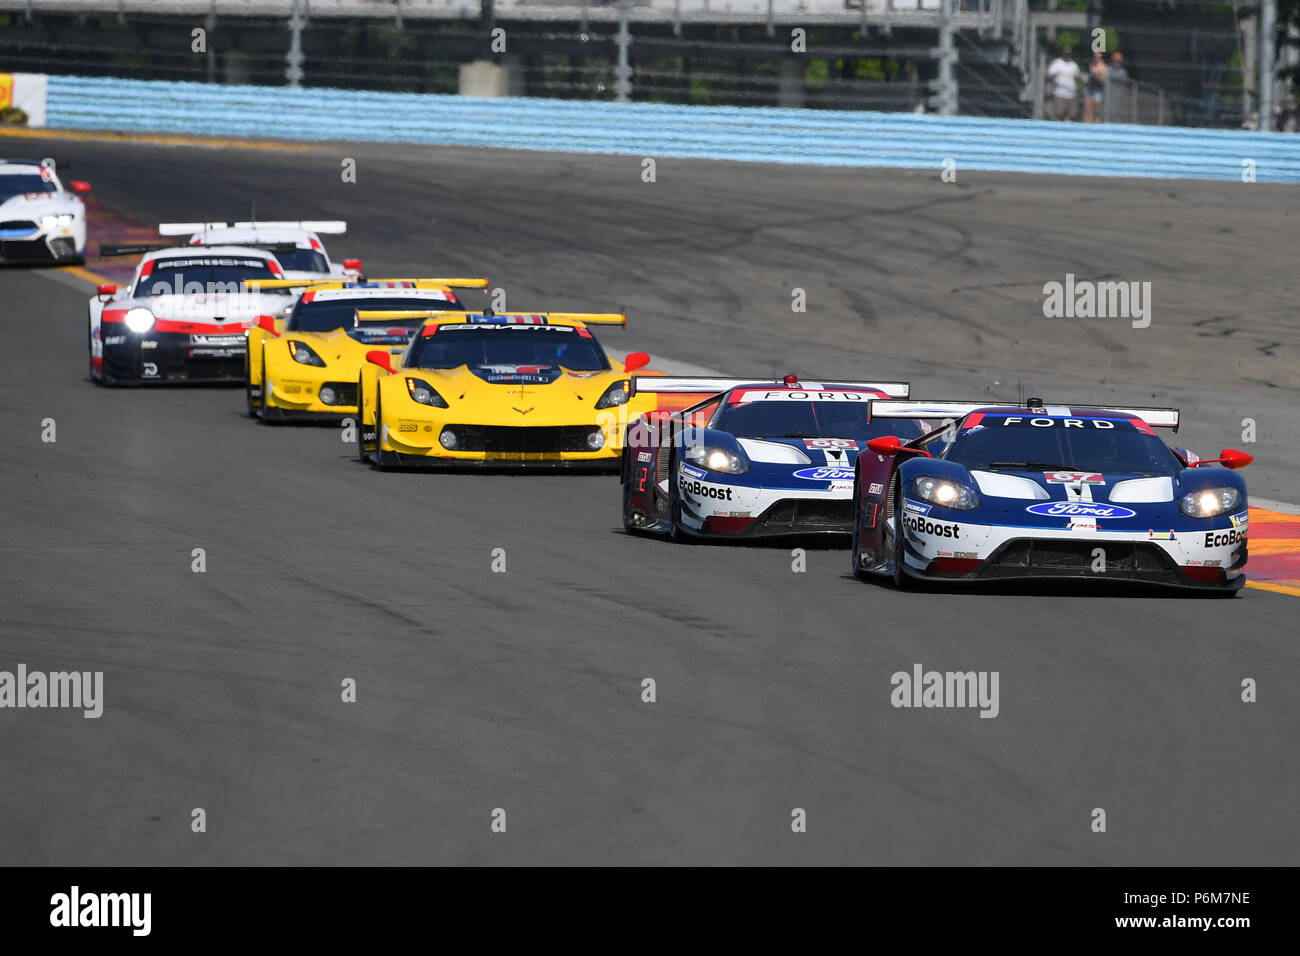 The  Ford Chip Ganassi Racing Ford Gt Driven By Ryan Briscoe Of Australia And Richard Westbrook Of Great Britain Leads A Group Of